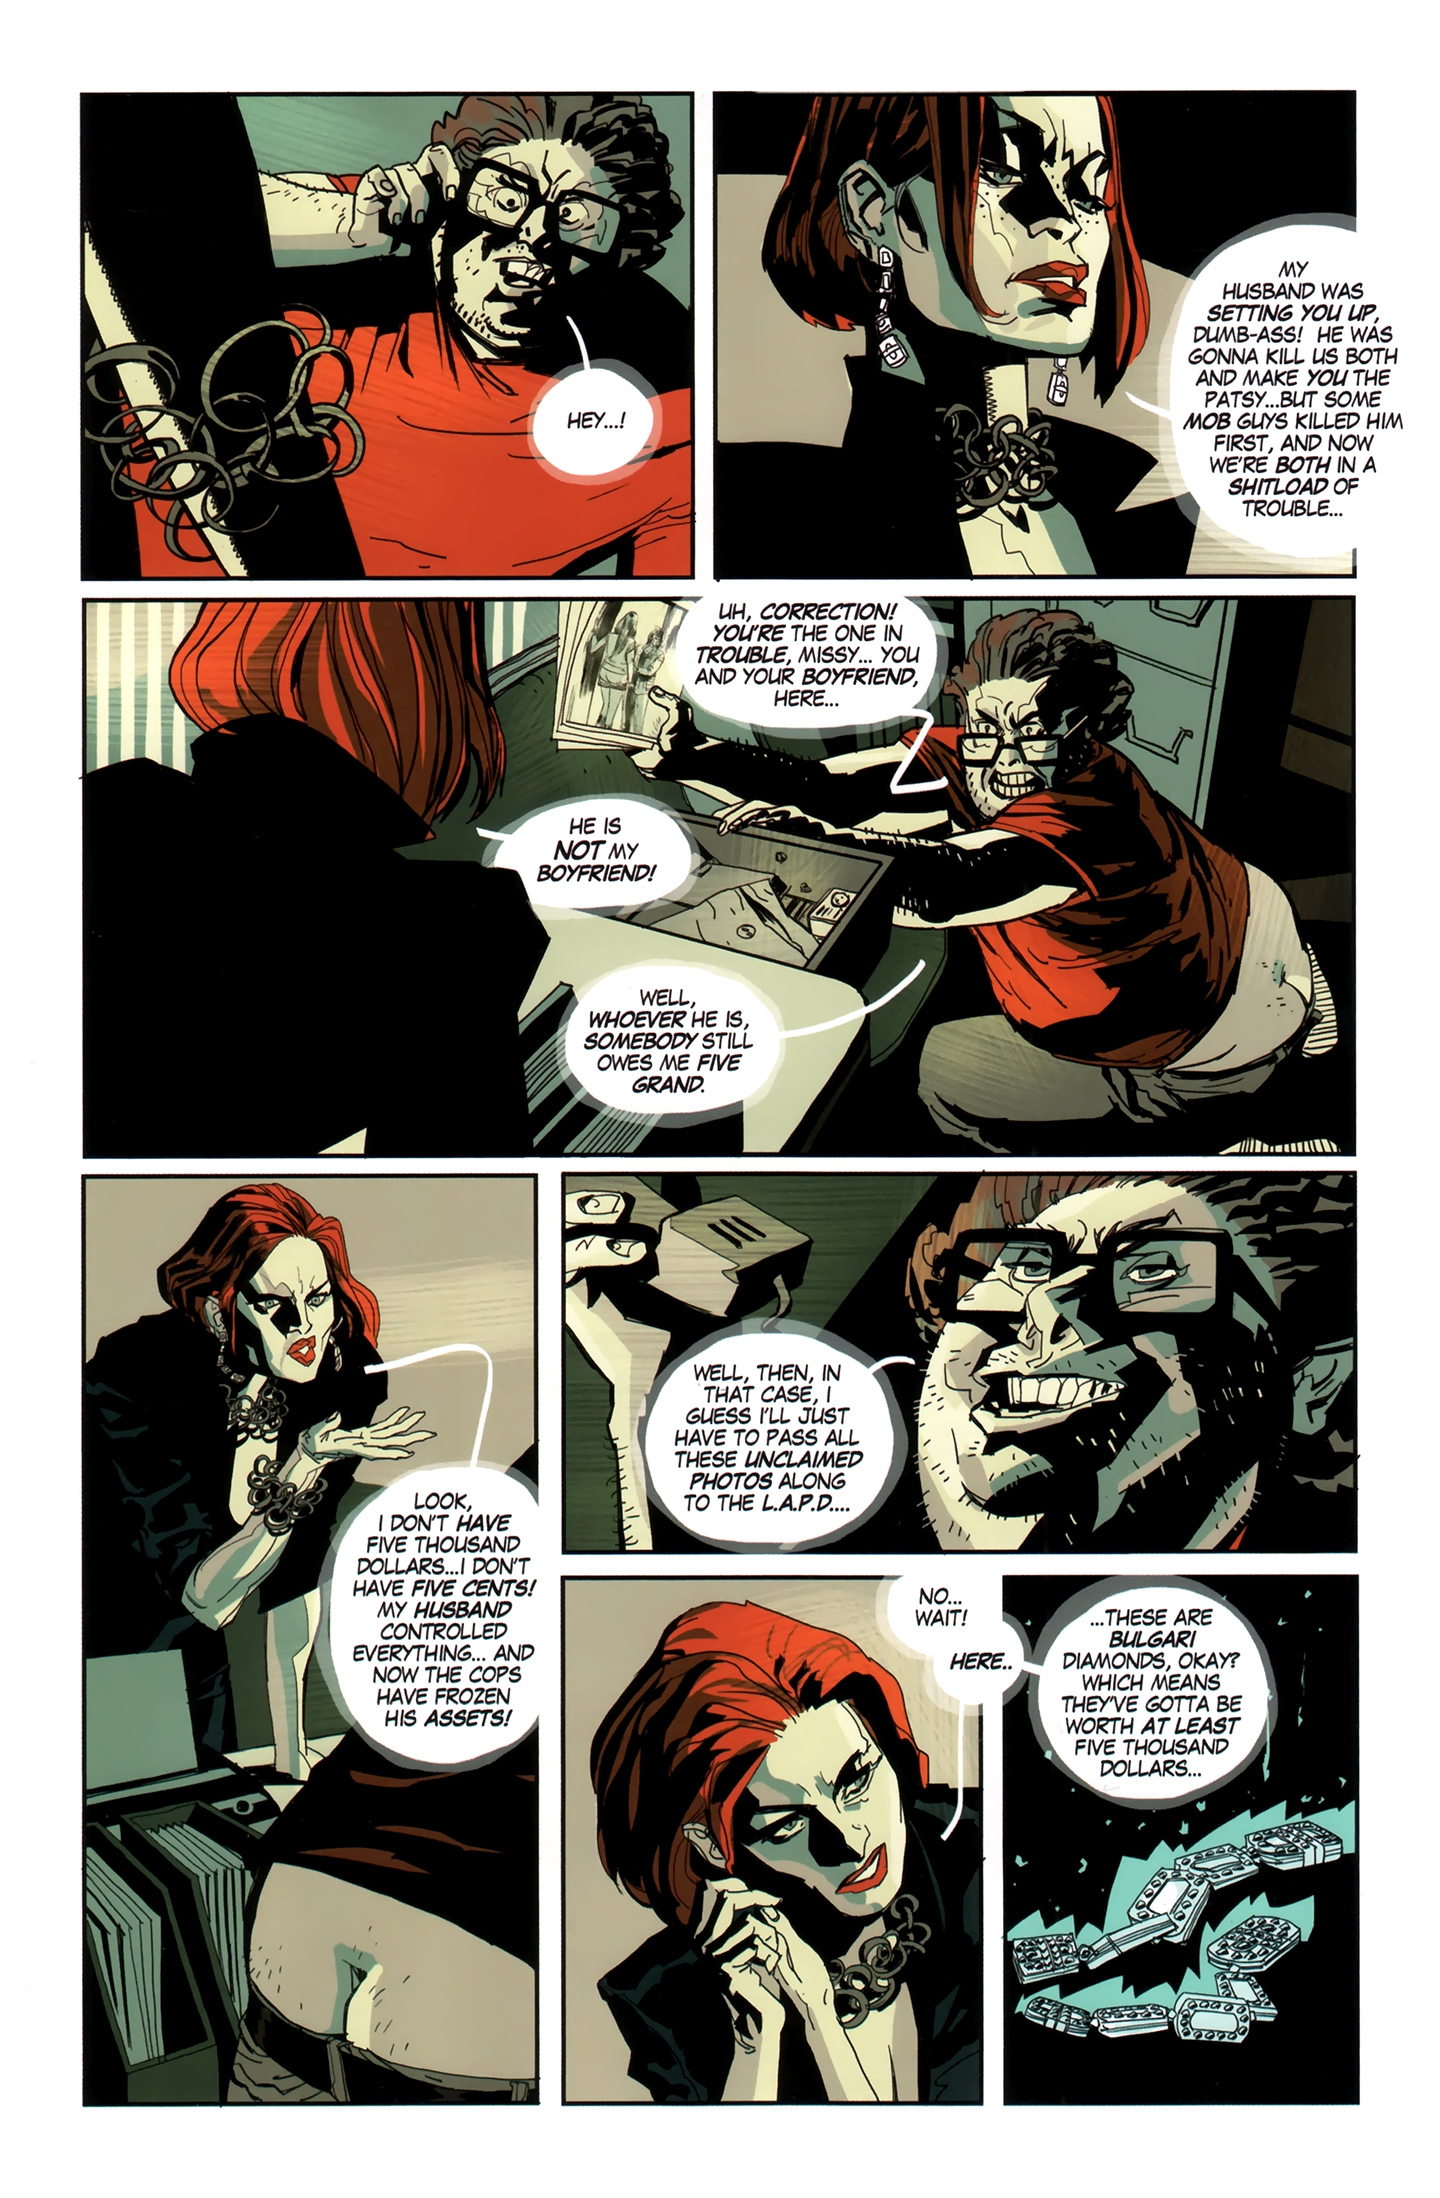 Blue Estate Issue 9 | Viewcomic reading comics online for